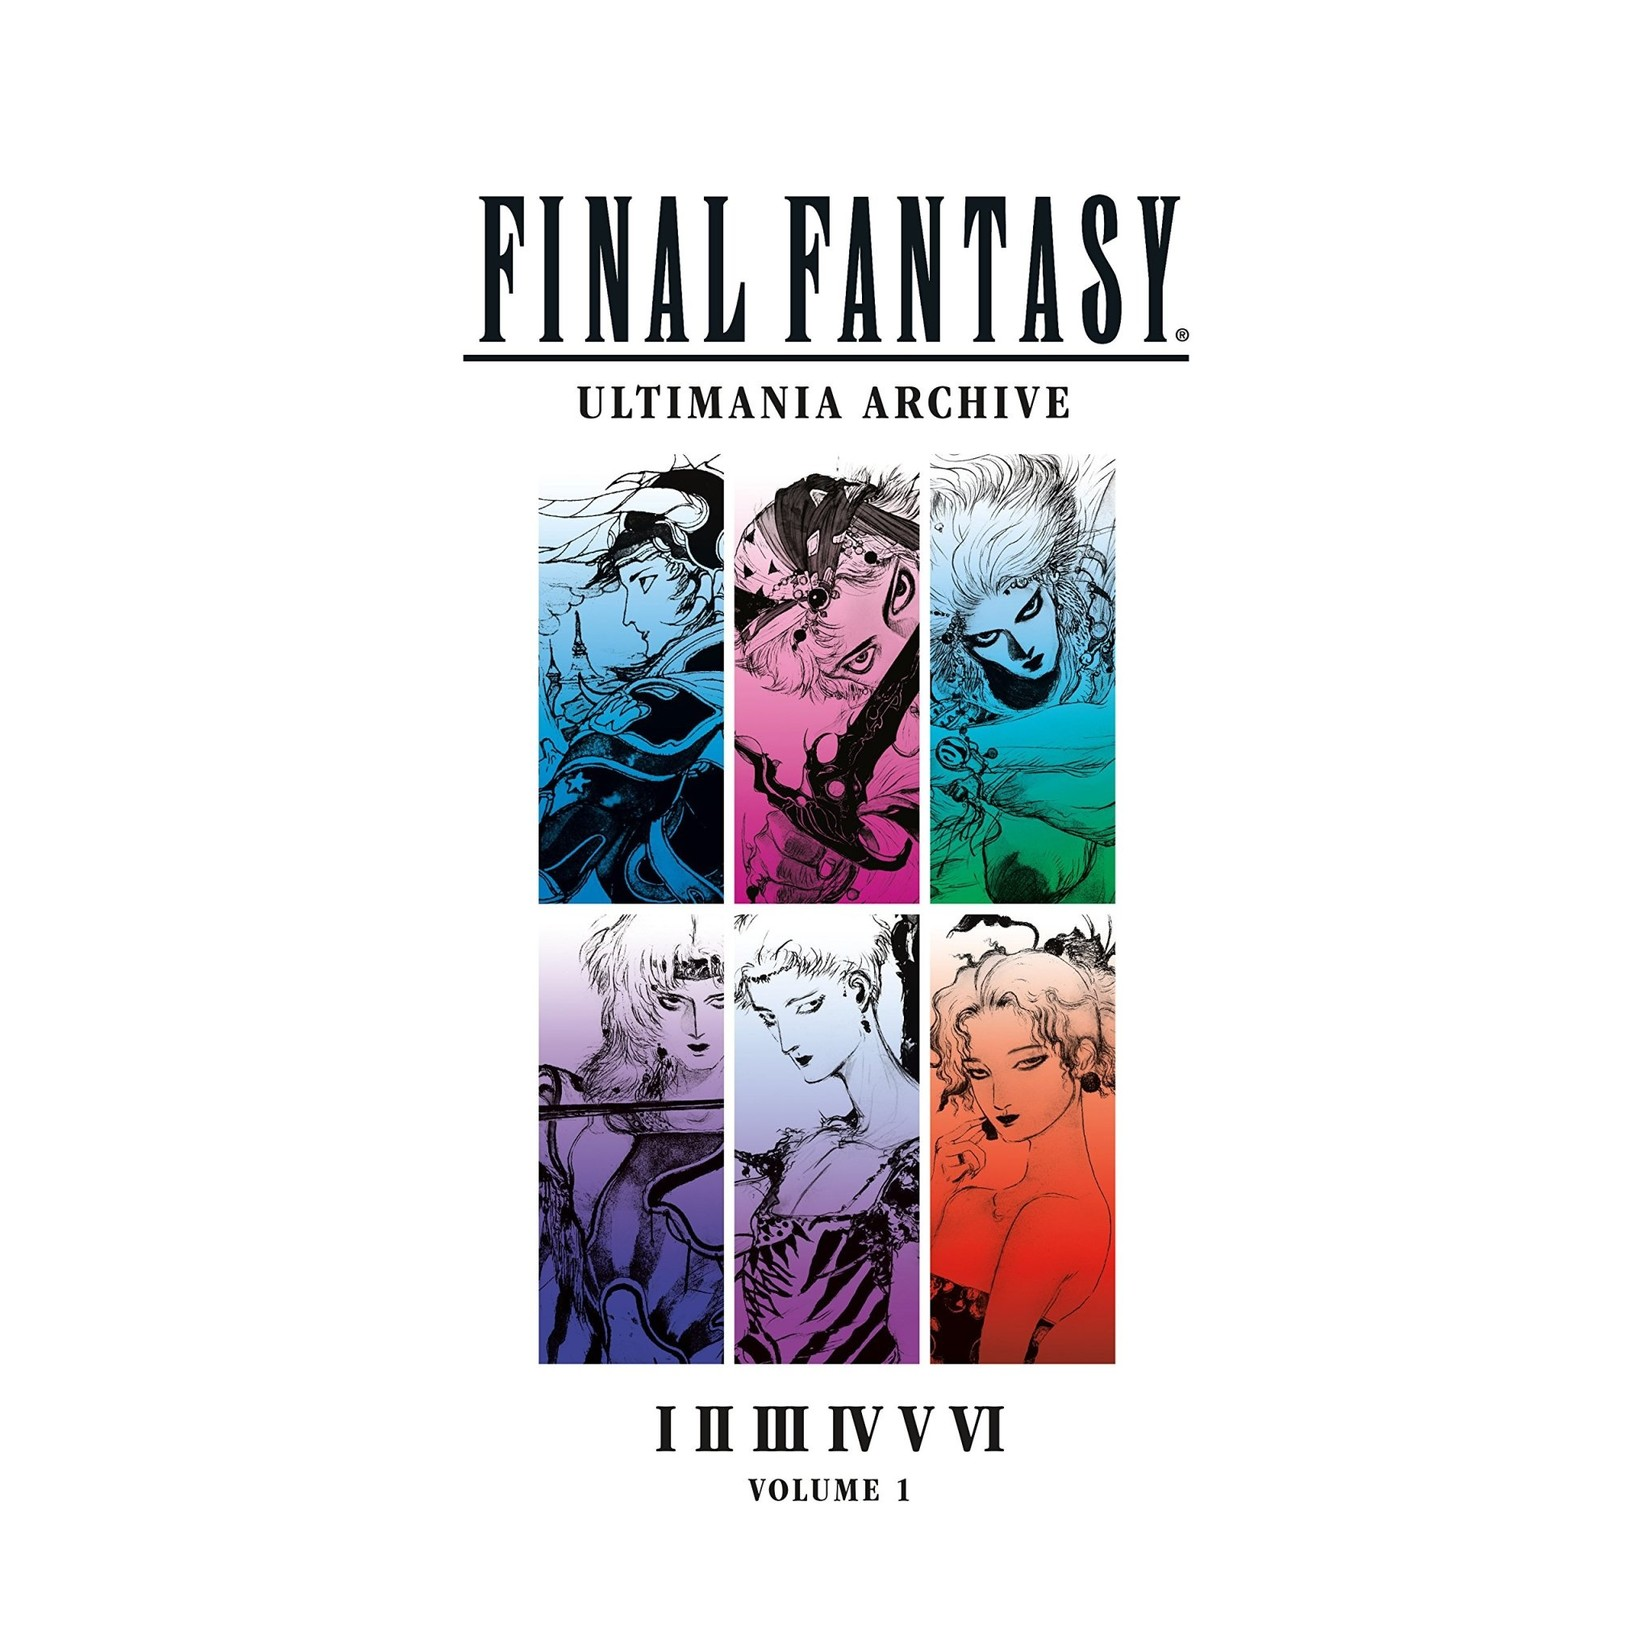 Final Fantasy Ultimania Archive : I II III IV VI Hardcover by Square